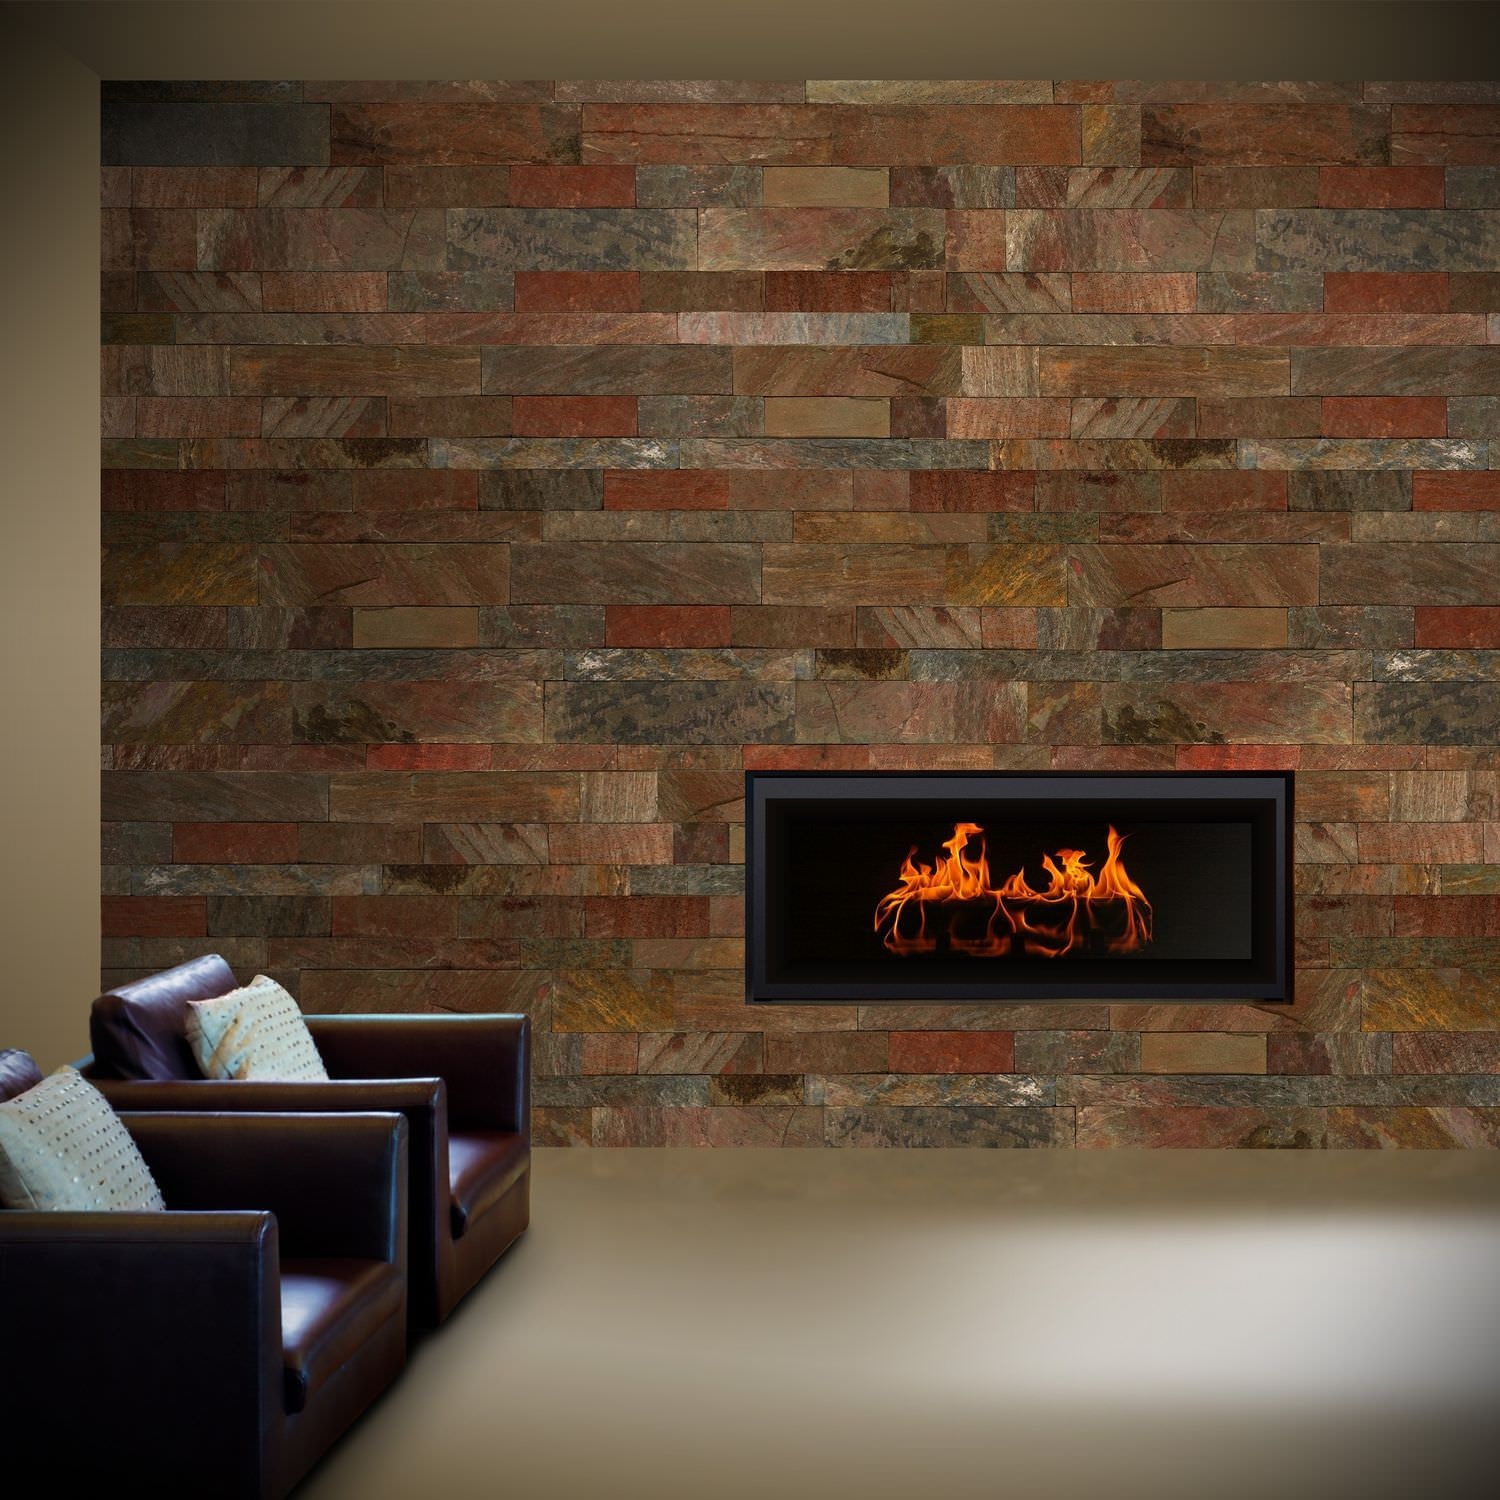 Subway Tile Living Room Interior: Interior Slate Tile With Brick Pattern Wall Interior